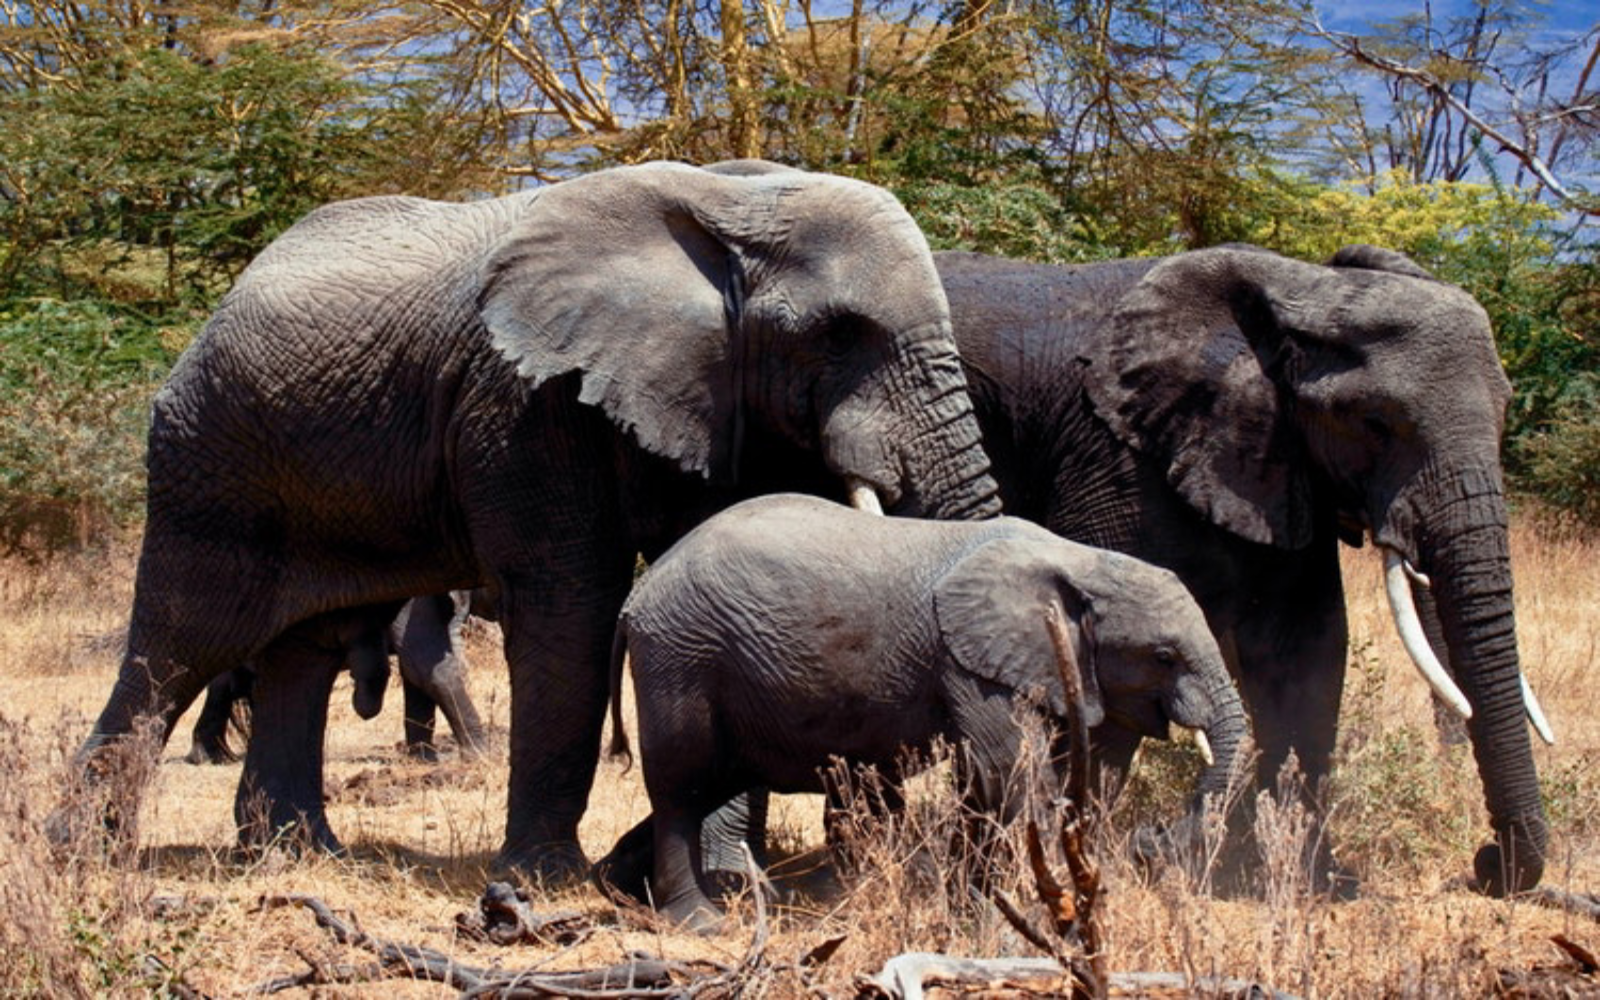 Oregon Zoo Has A Horrible Track Record With Elephants Tell Them To Stop Breeding And Abusing These Animals For Good One Green Planet